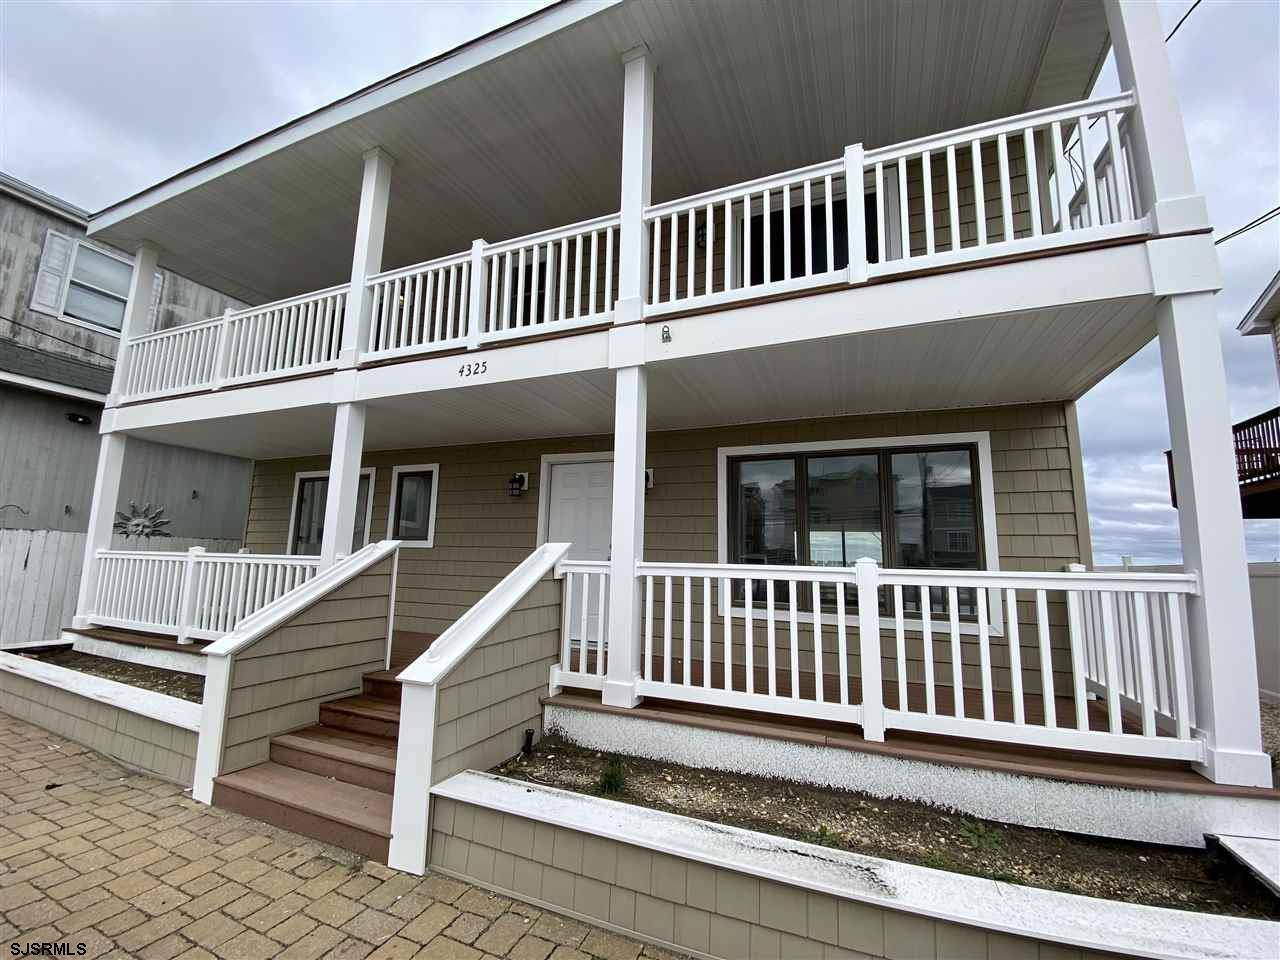 Attention all boaters! Here's a great find on Atlantic Brigantine Boulevard. 3 bedrooms 2 baths and